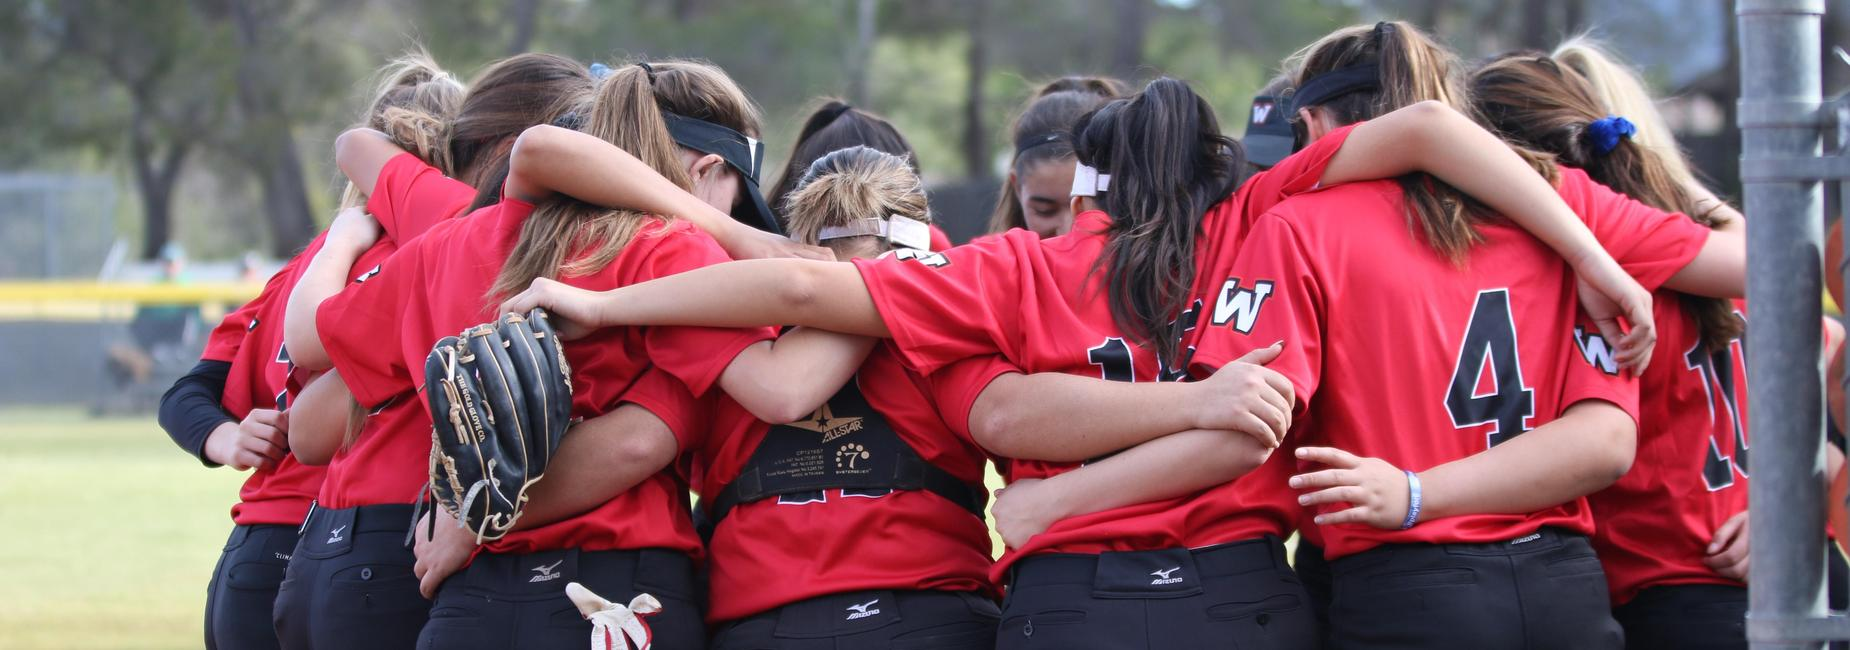 Photo of the softball team in a huddle.